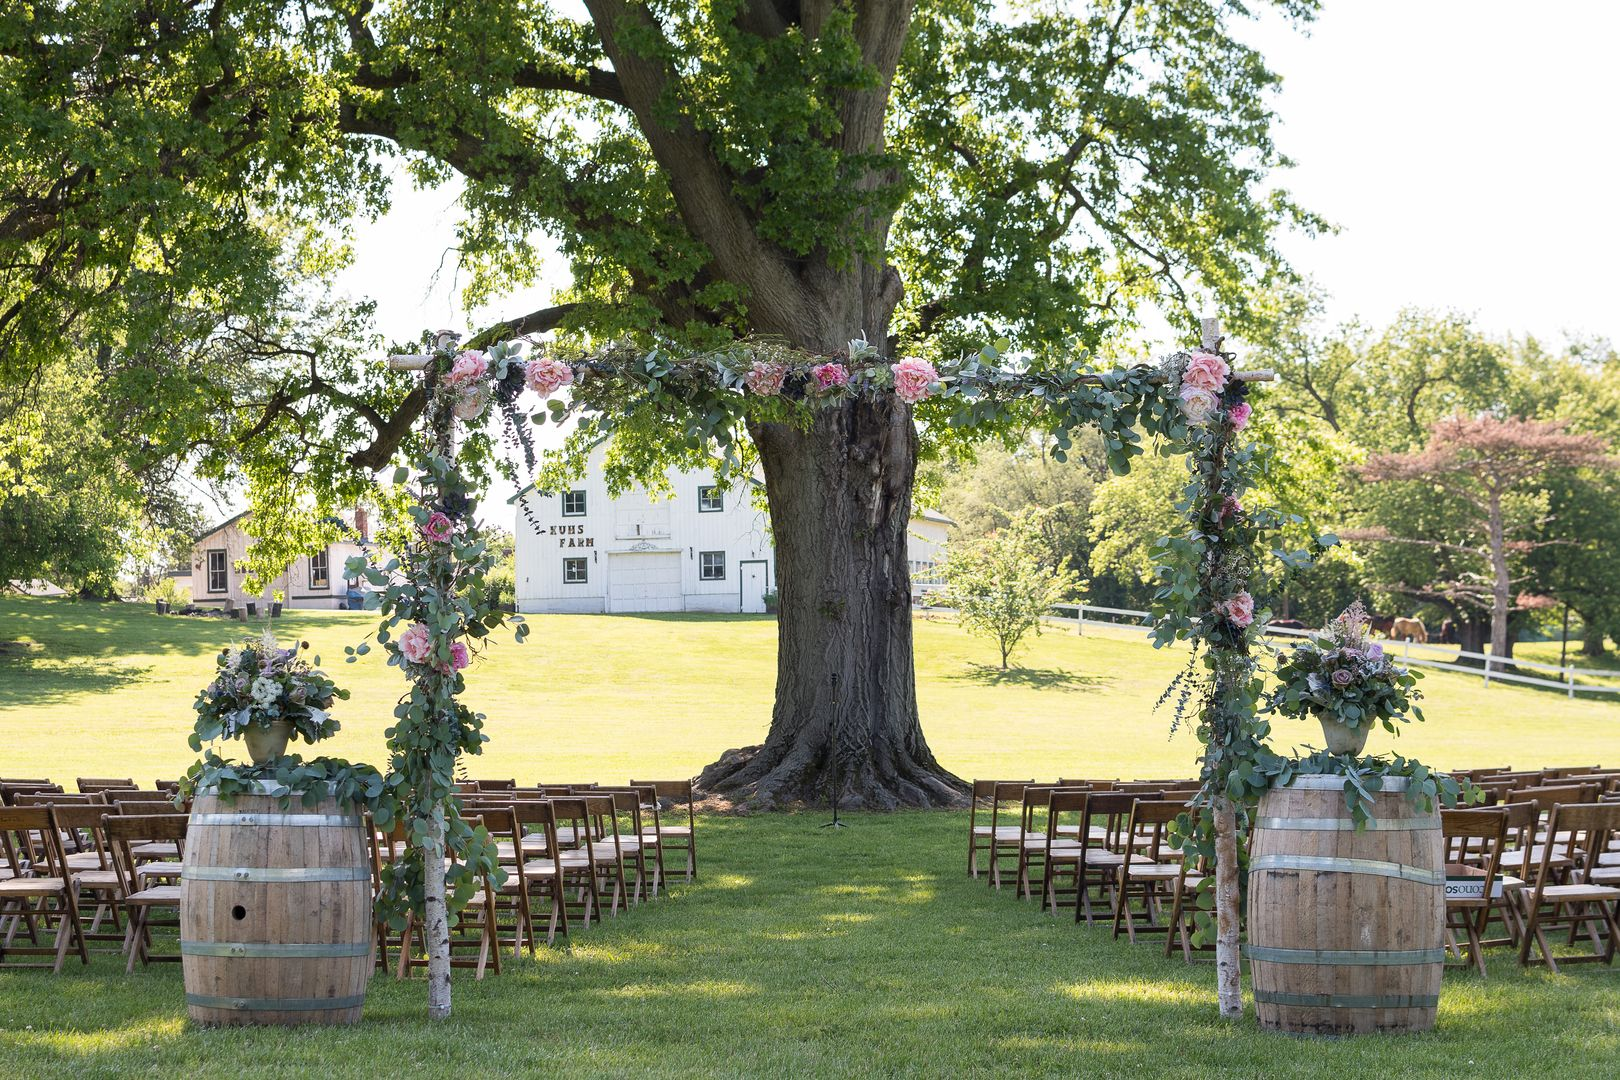 Private Event E Weddings And Receptions Kuhs Estate Farm St Louis